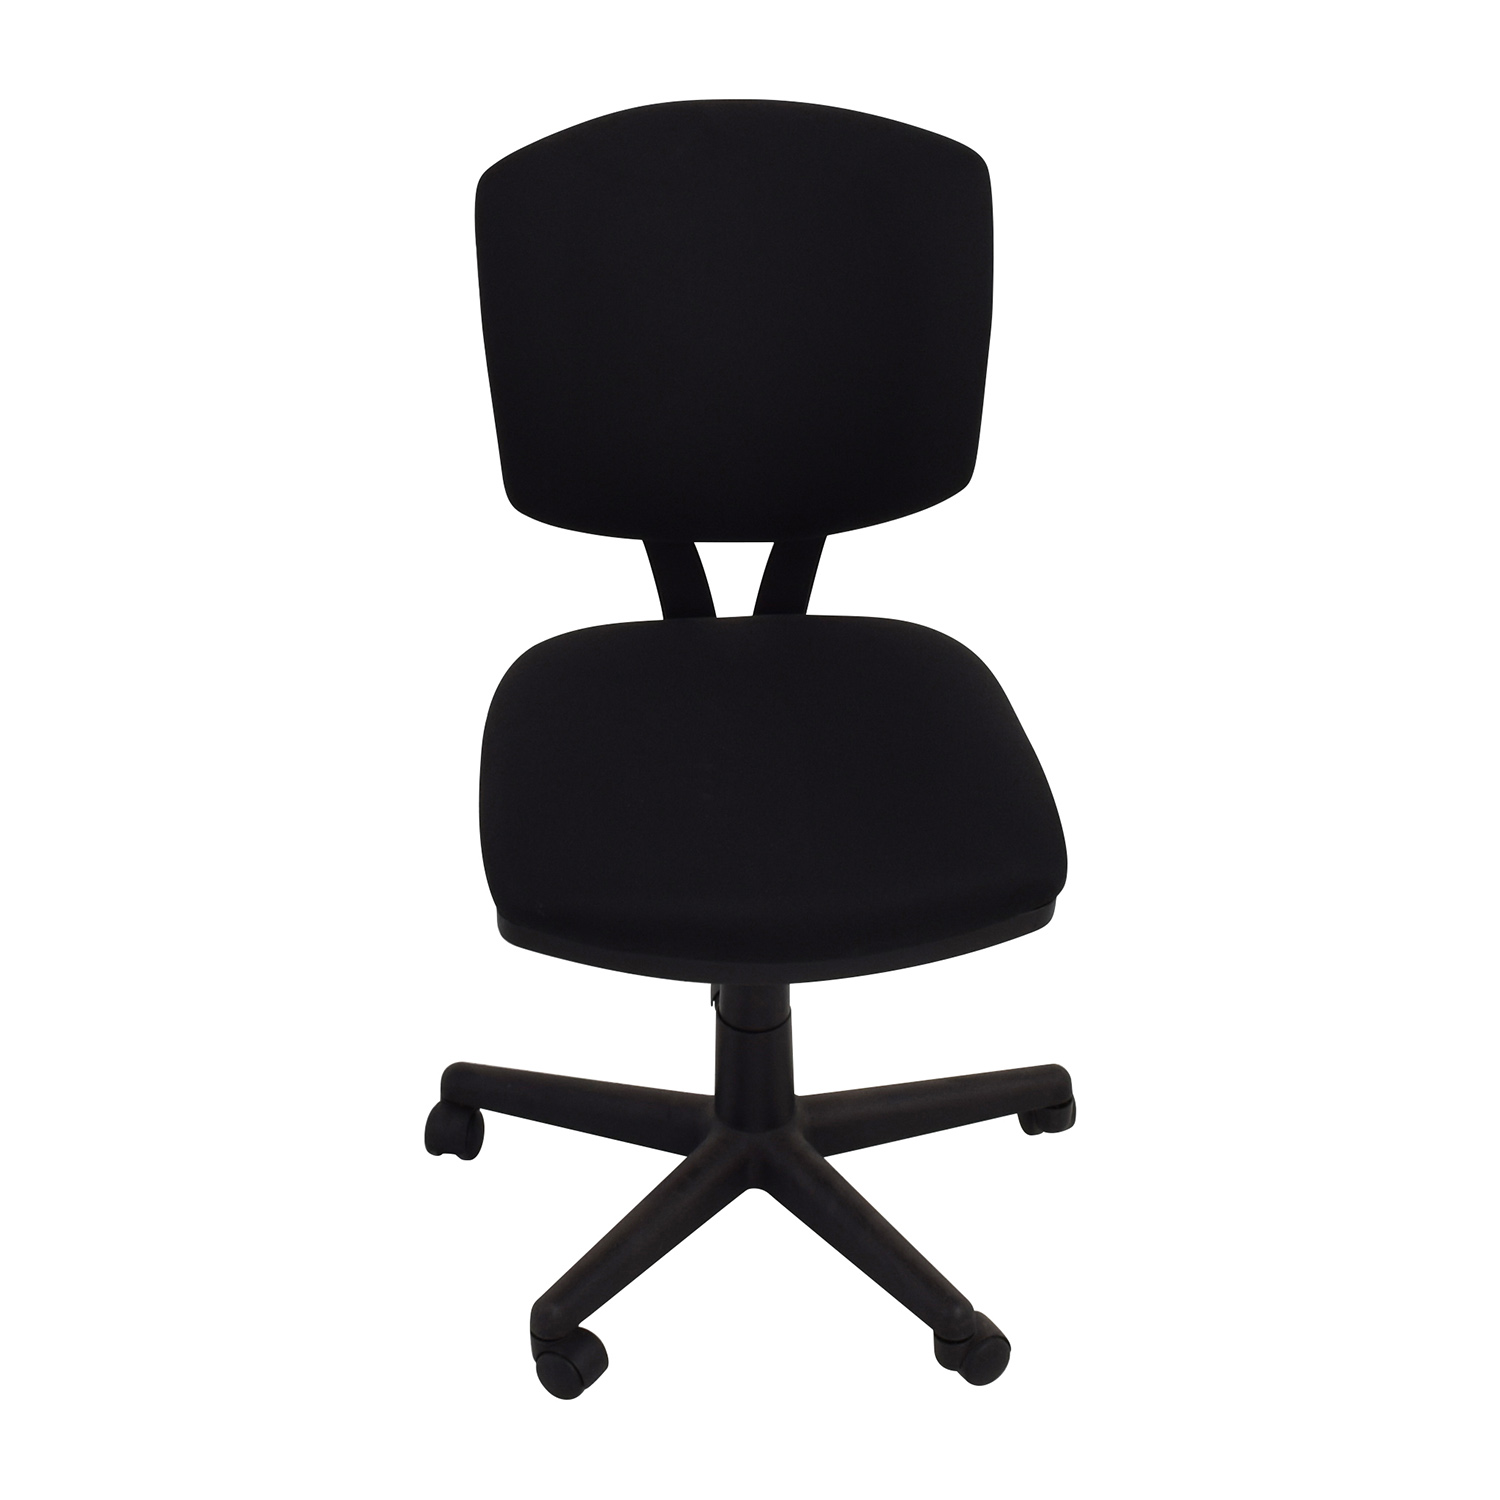 Black Adjustable fice Chair Home fice Chairs